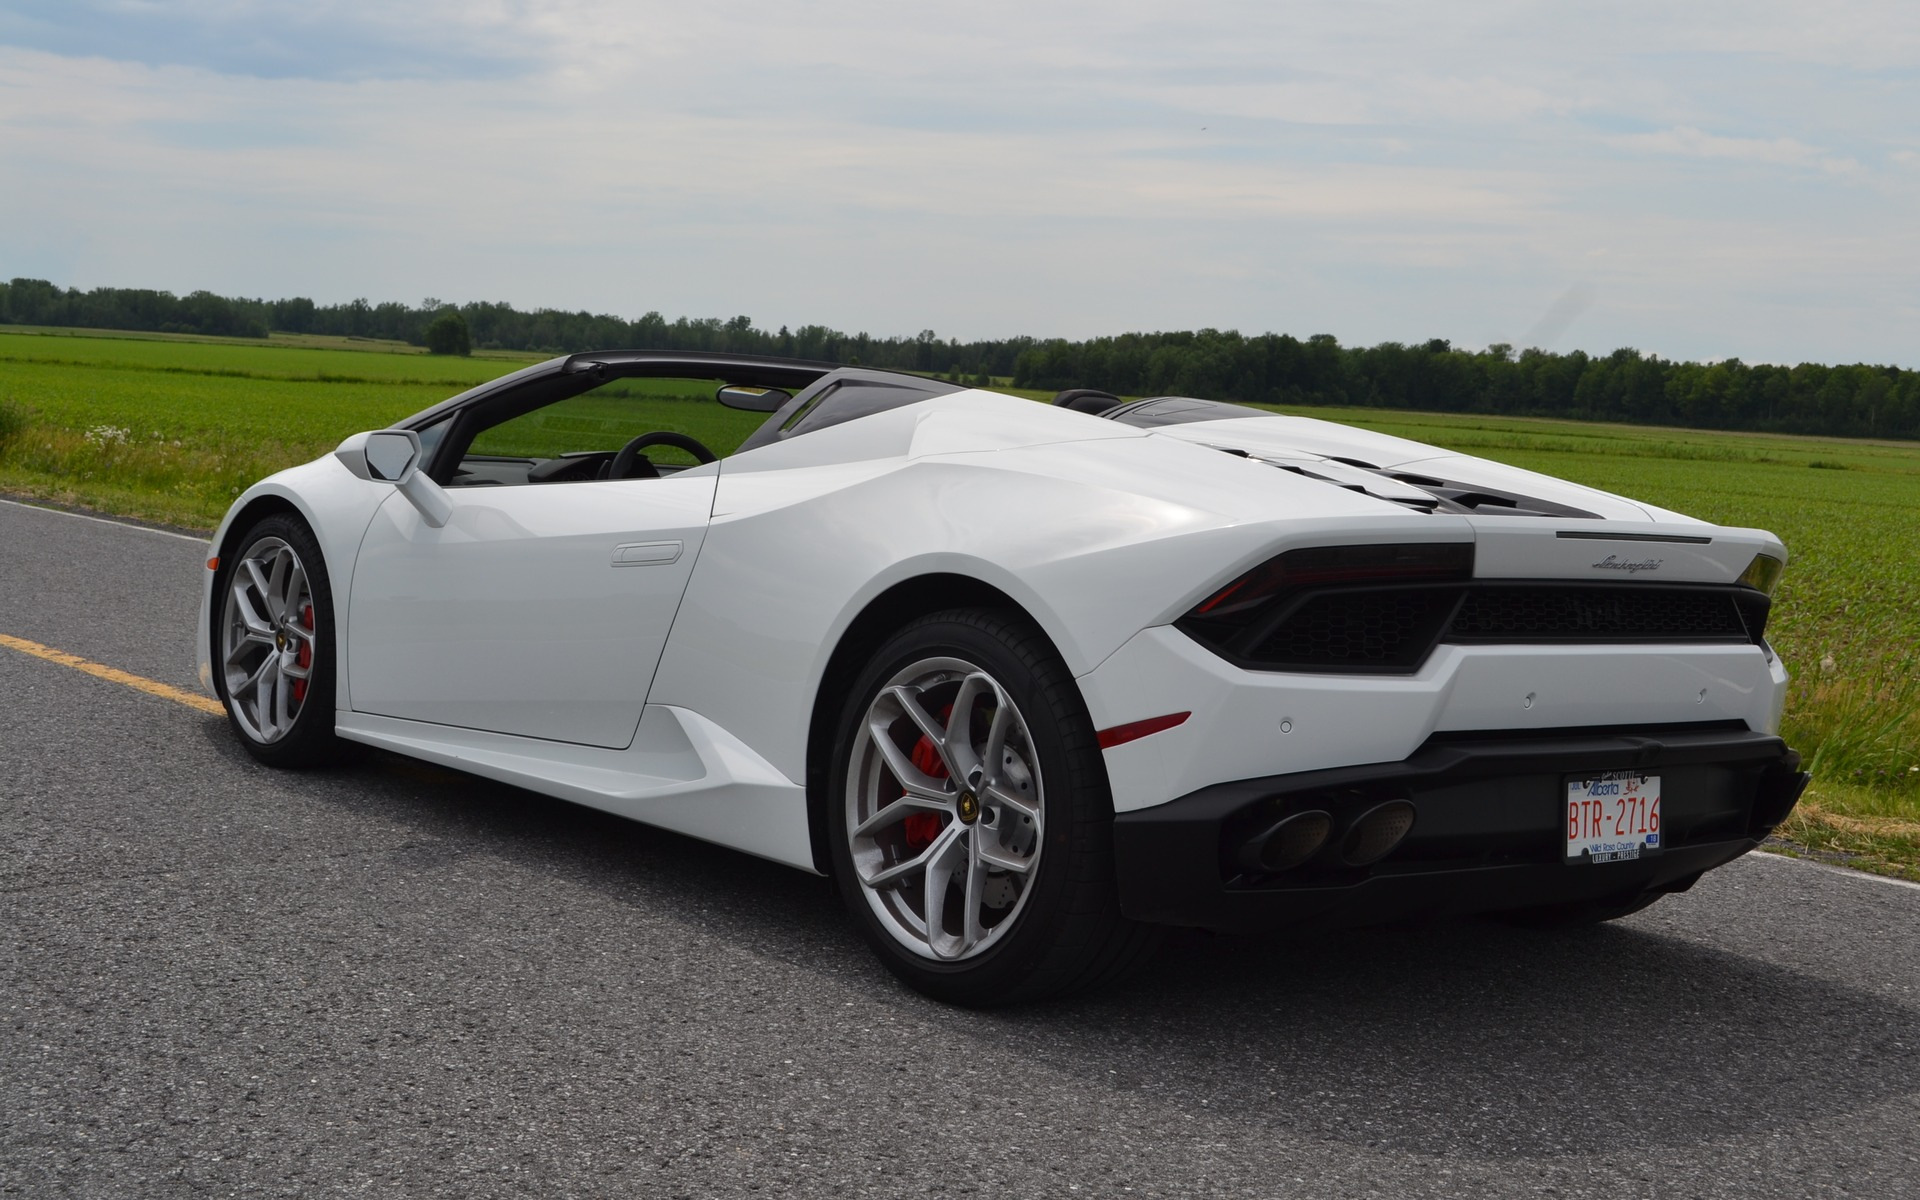 one was aventador speed prices used news reviews top off highlights cars goodwood secret lamborghini the of this and lamborg s